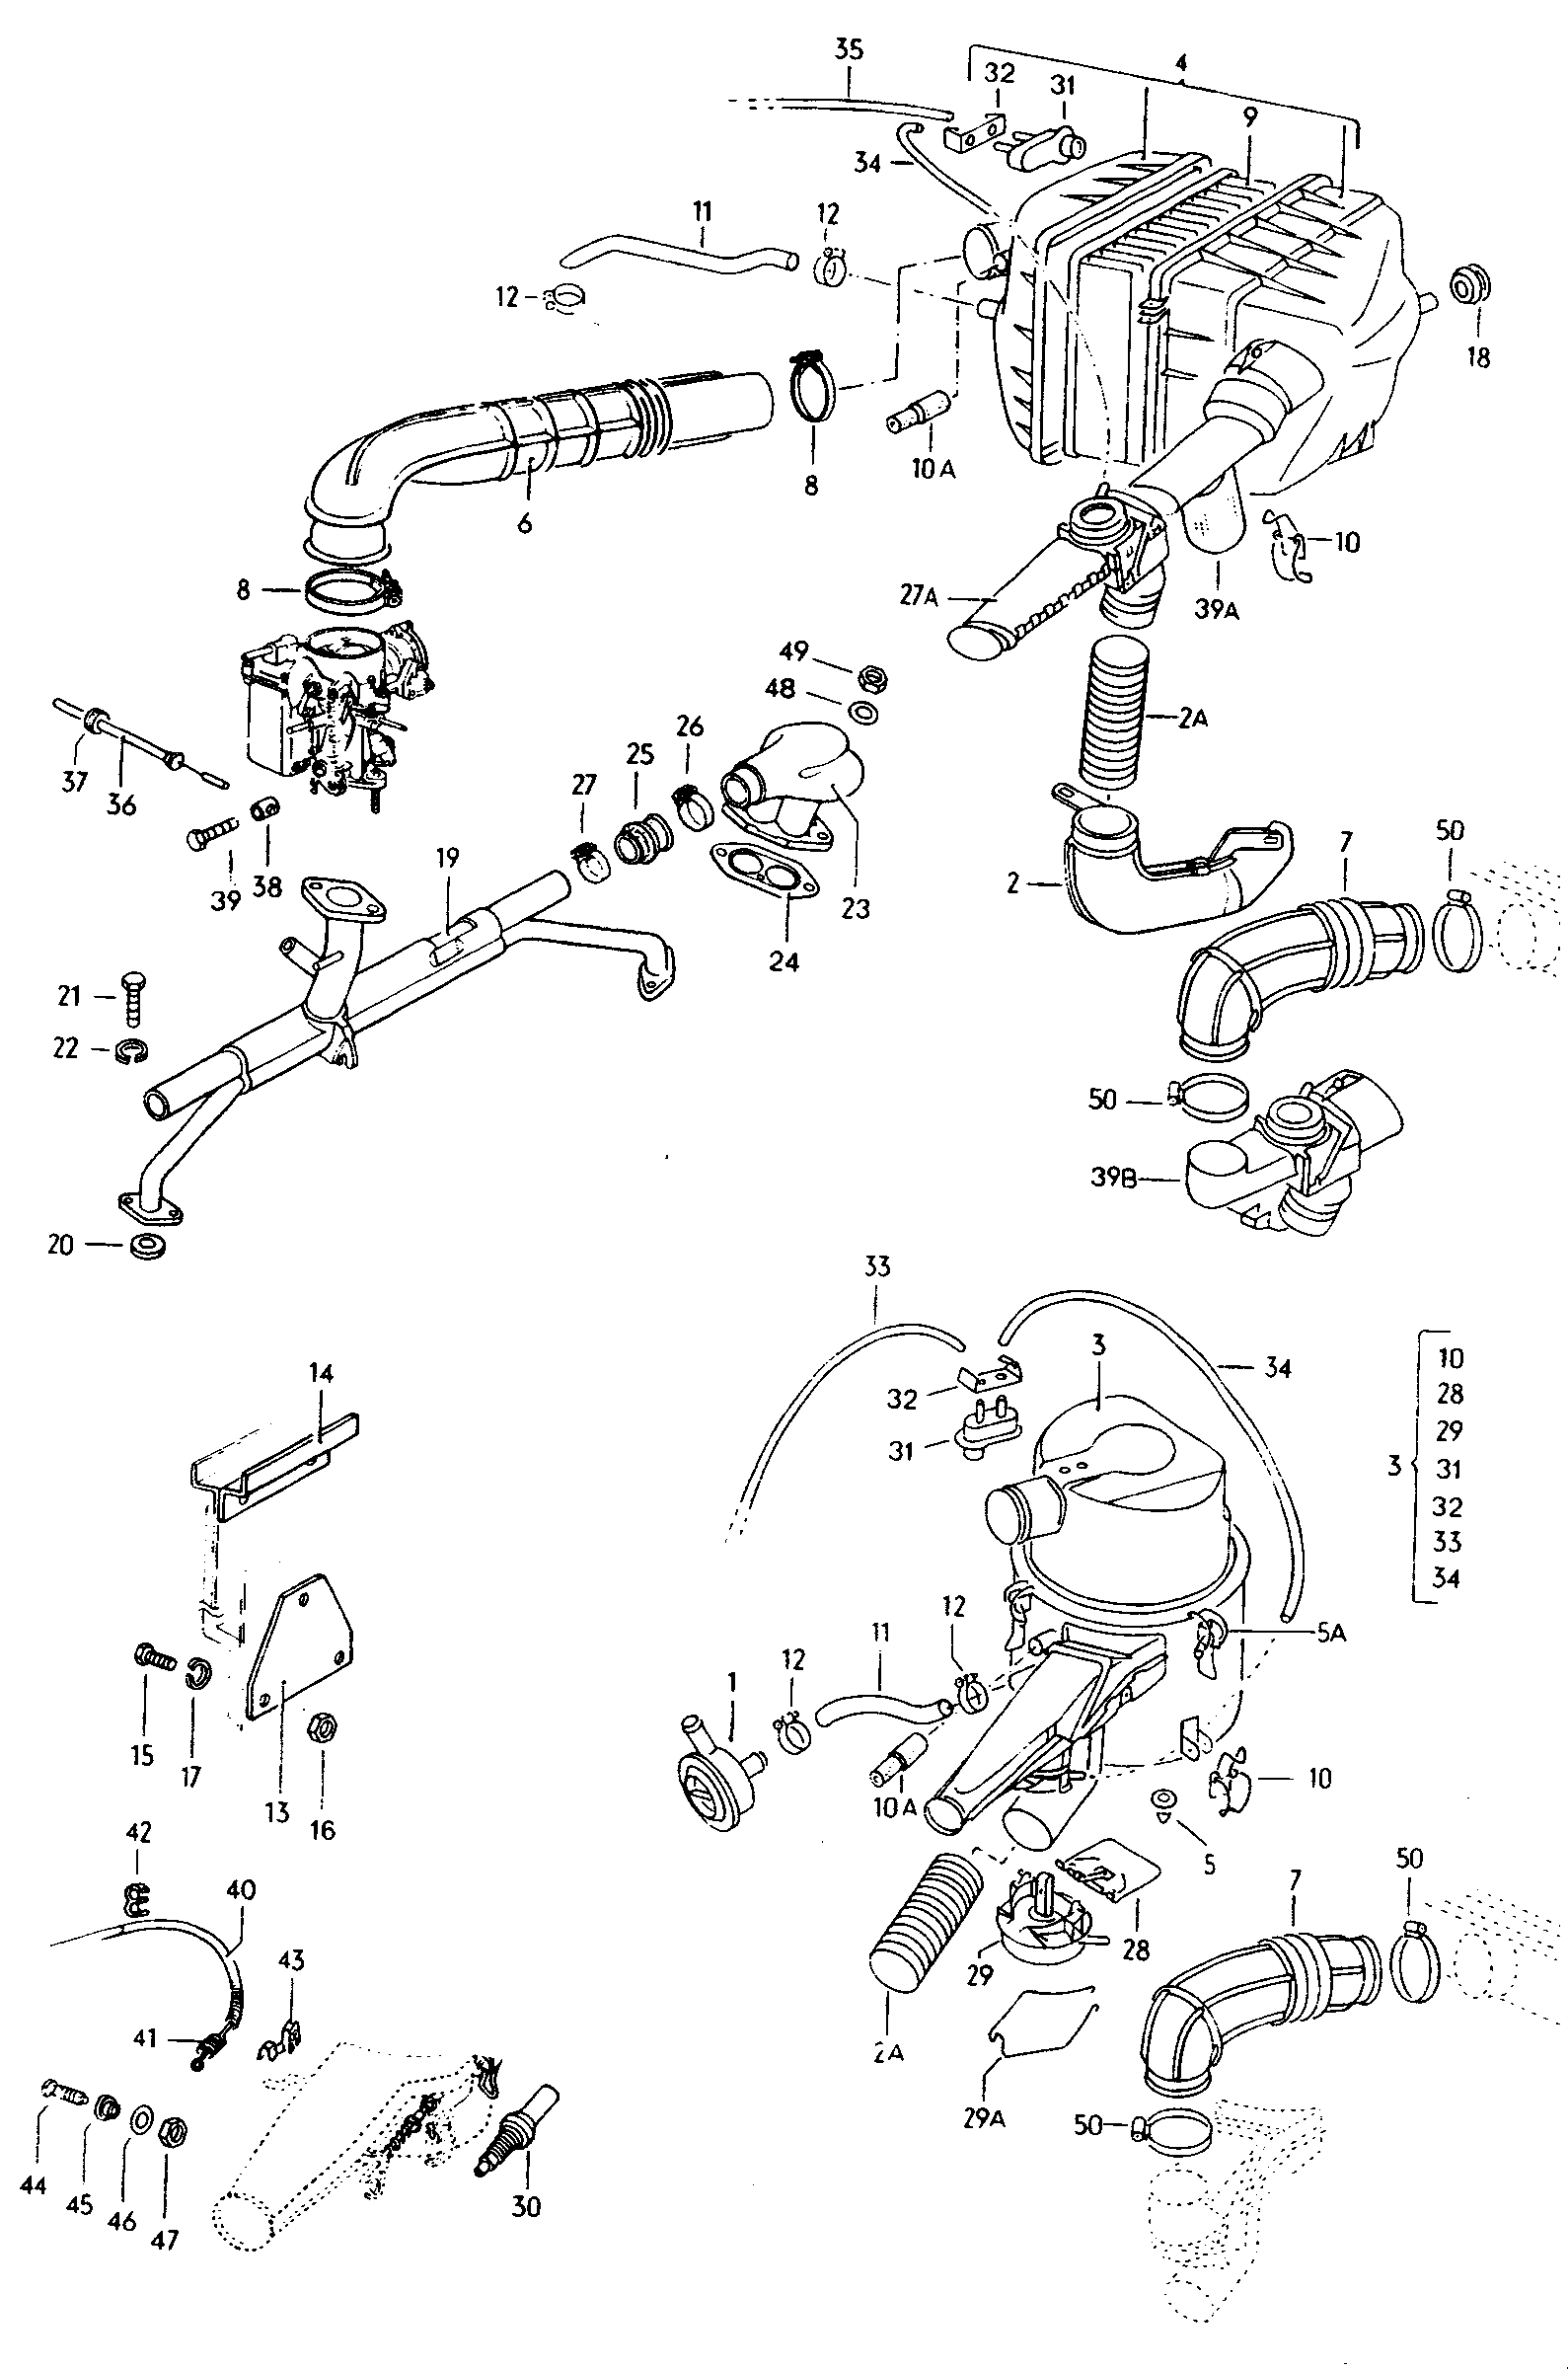 VW, Type 2 USA, 1969, Engine, 15 - Catcar info